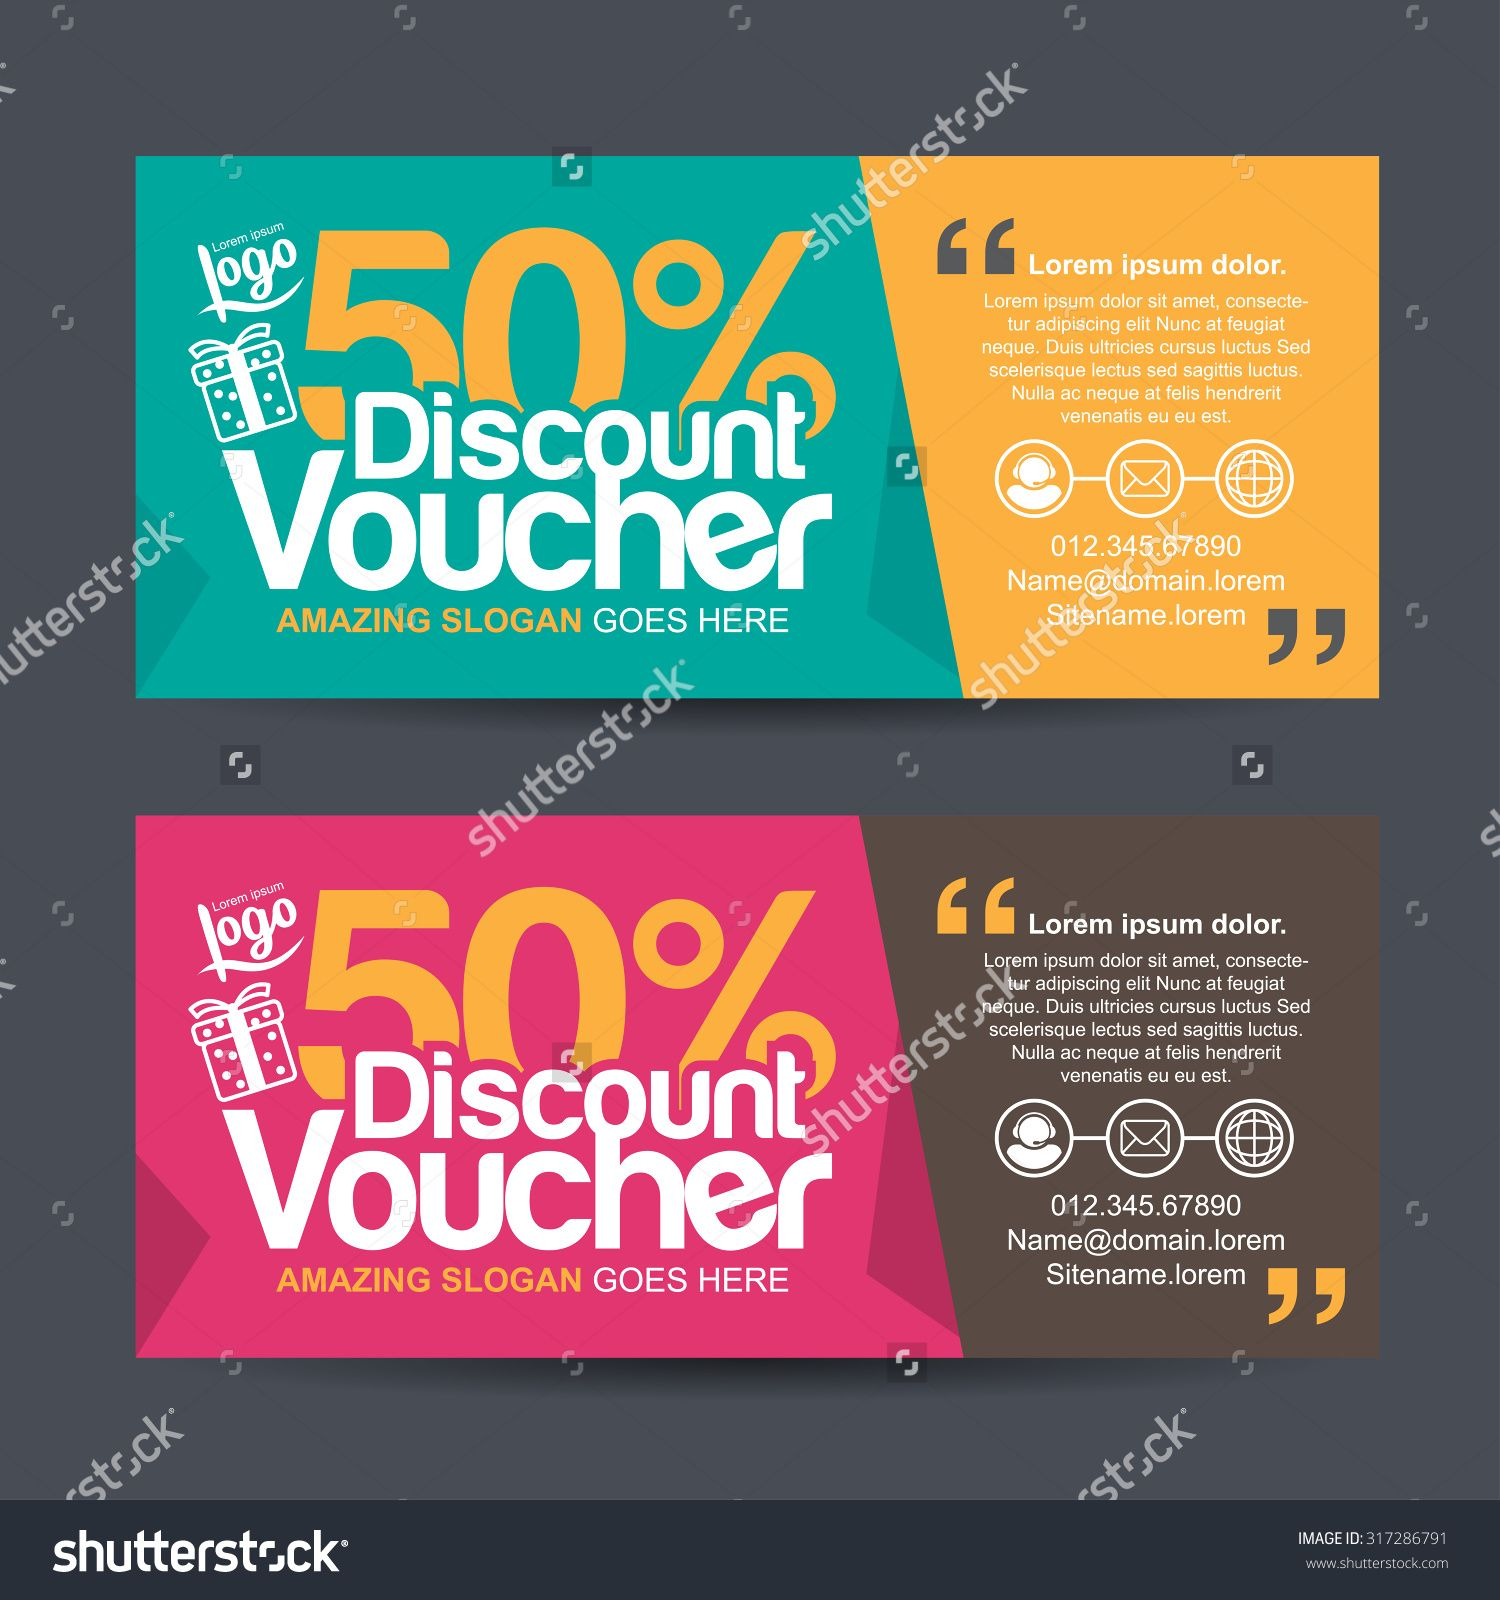 Discont design google search banner pinterest free vectors gift voucher template with colorful patterncute gift voucher yelopaper Gallery